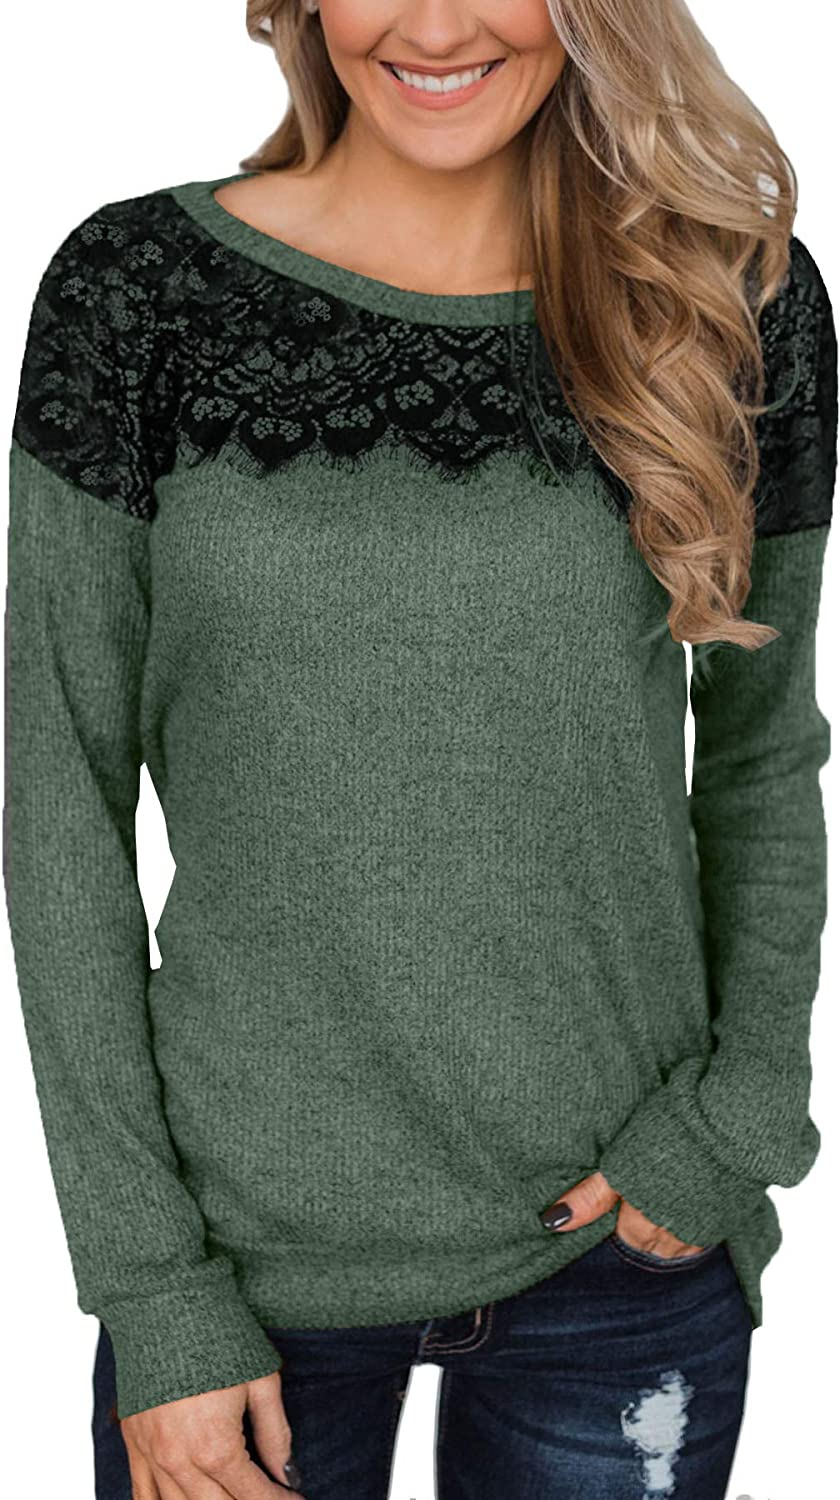 For G and PL Womens Black Lace Top Long Sleeve Elegant Sweatshirt